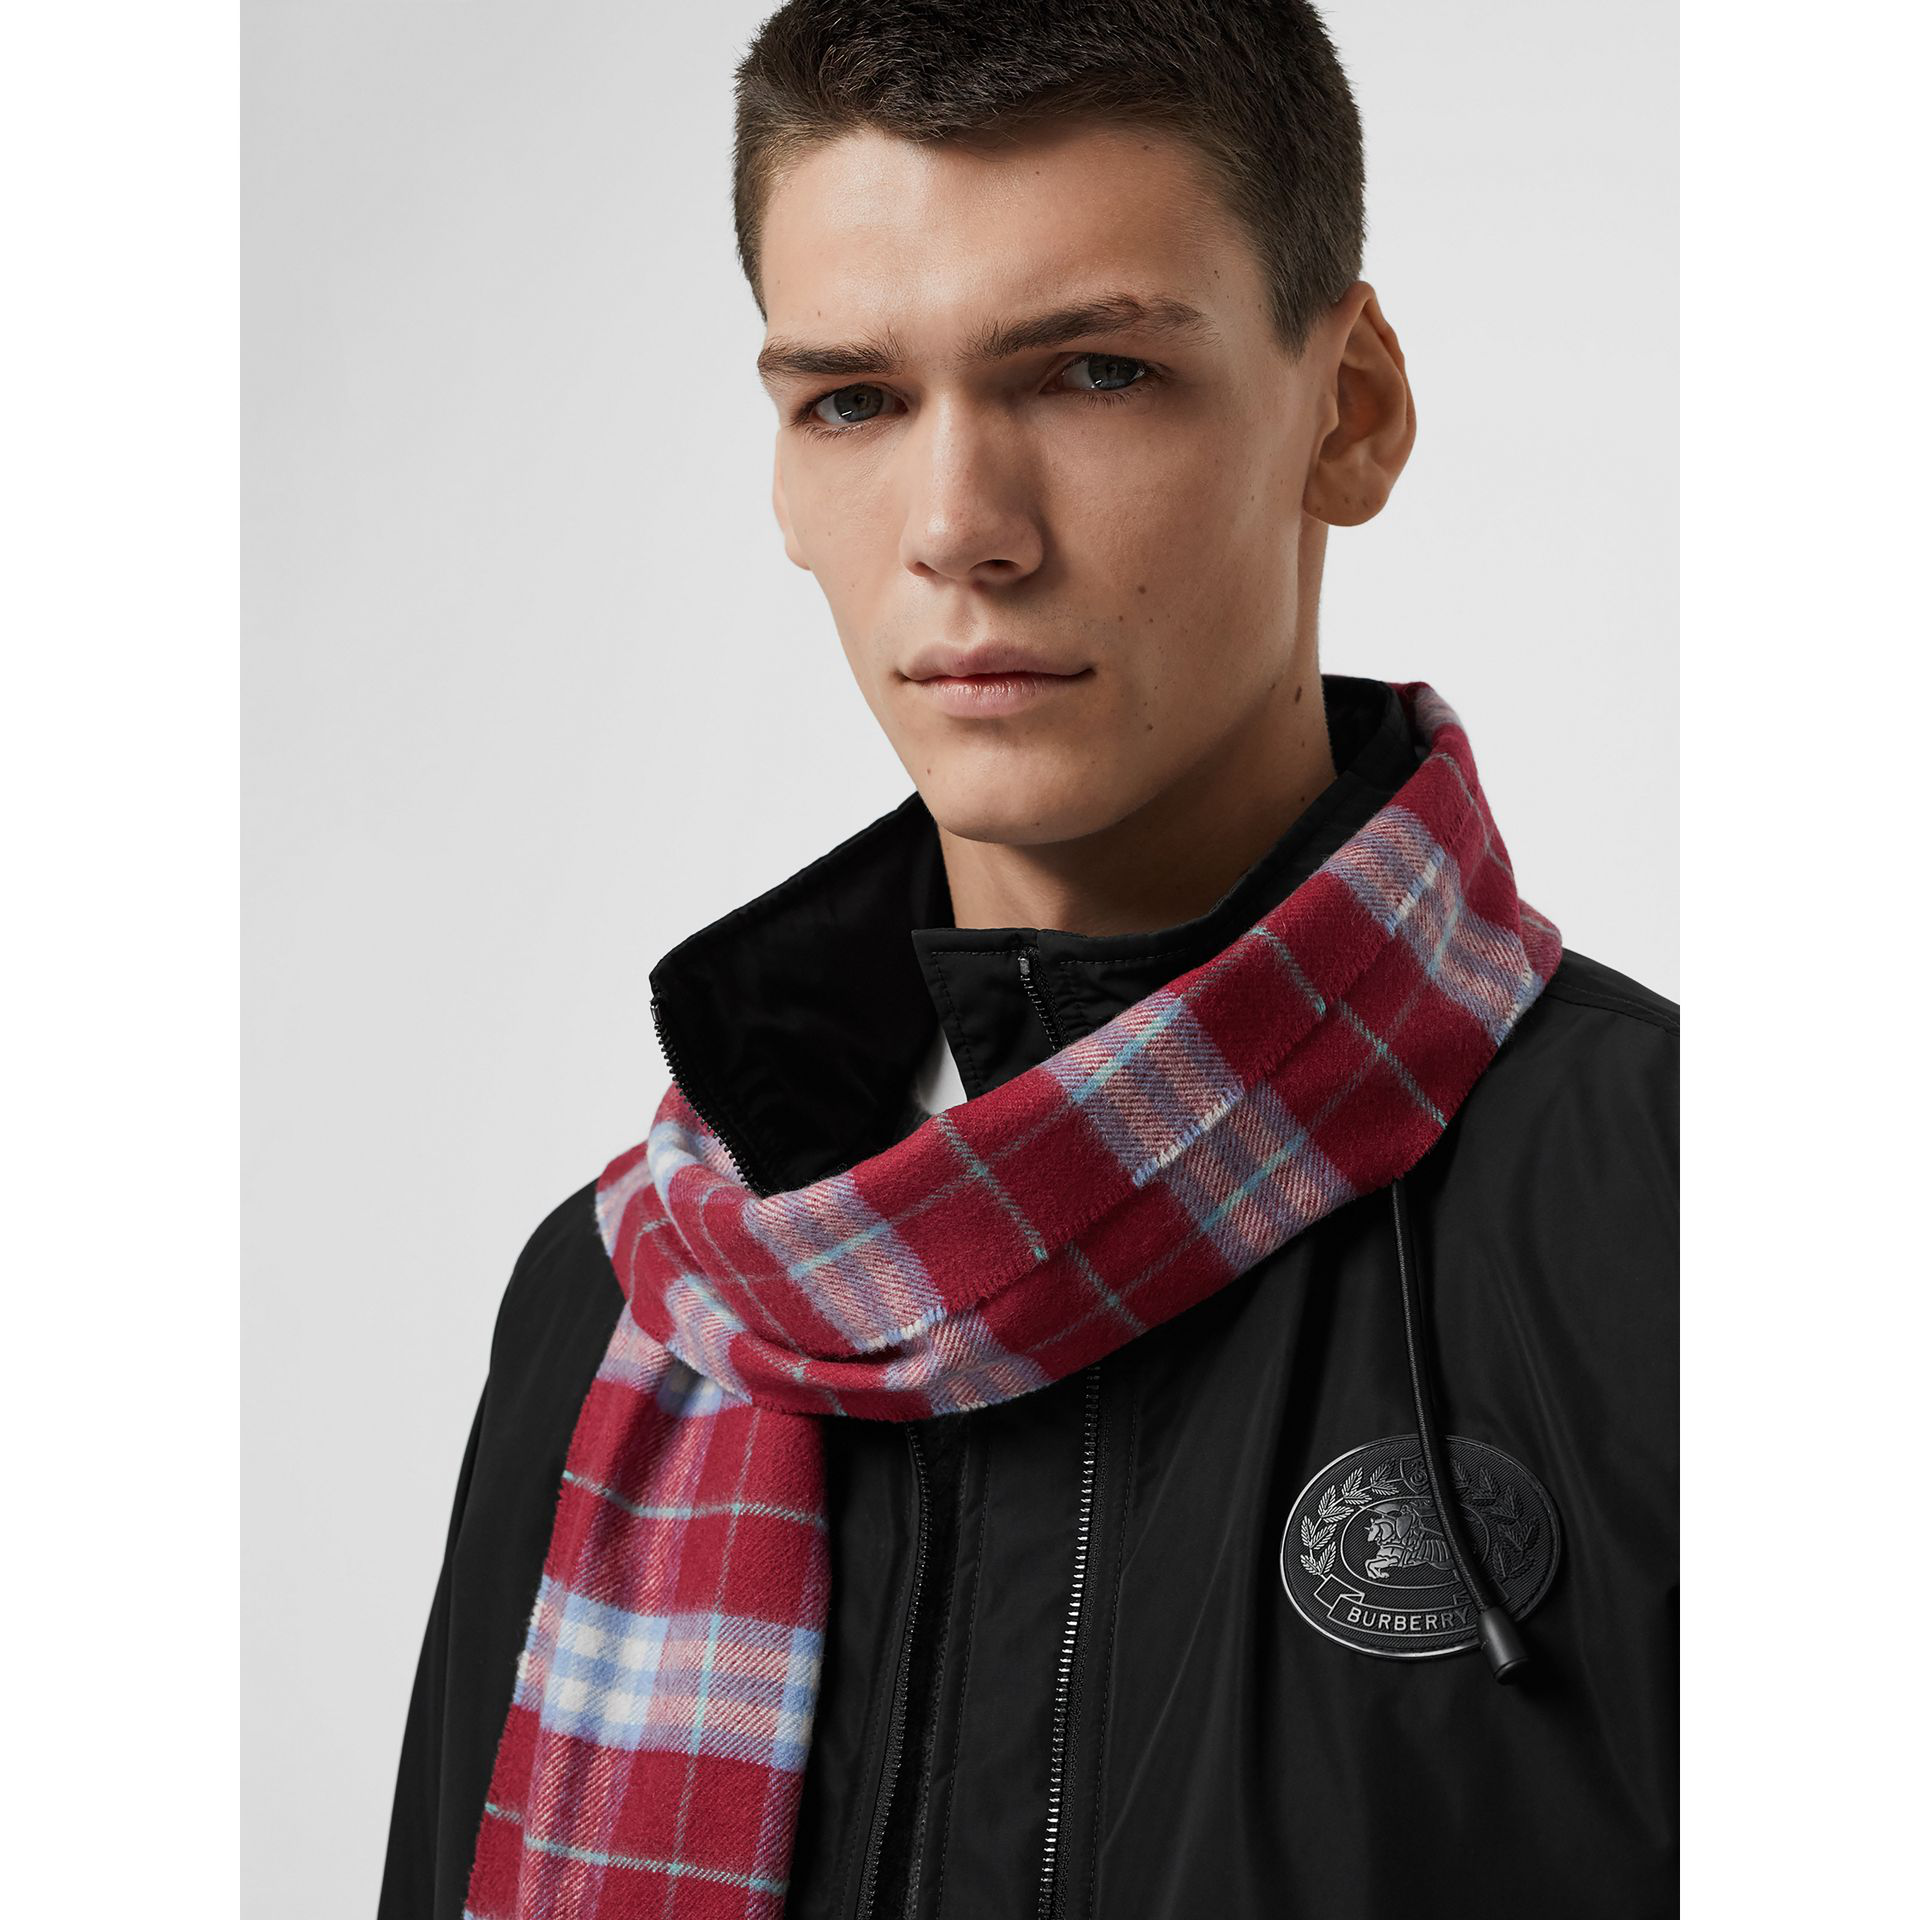 755eae7f4bde Burberry The Classic Vintage Check Cashmere Scarf In Damson Pink ...